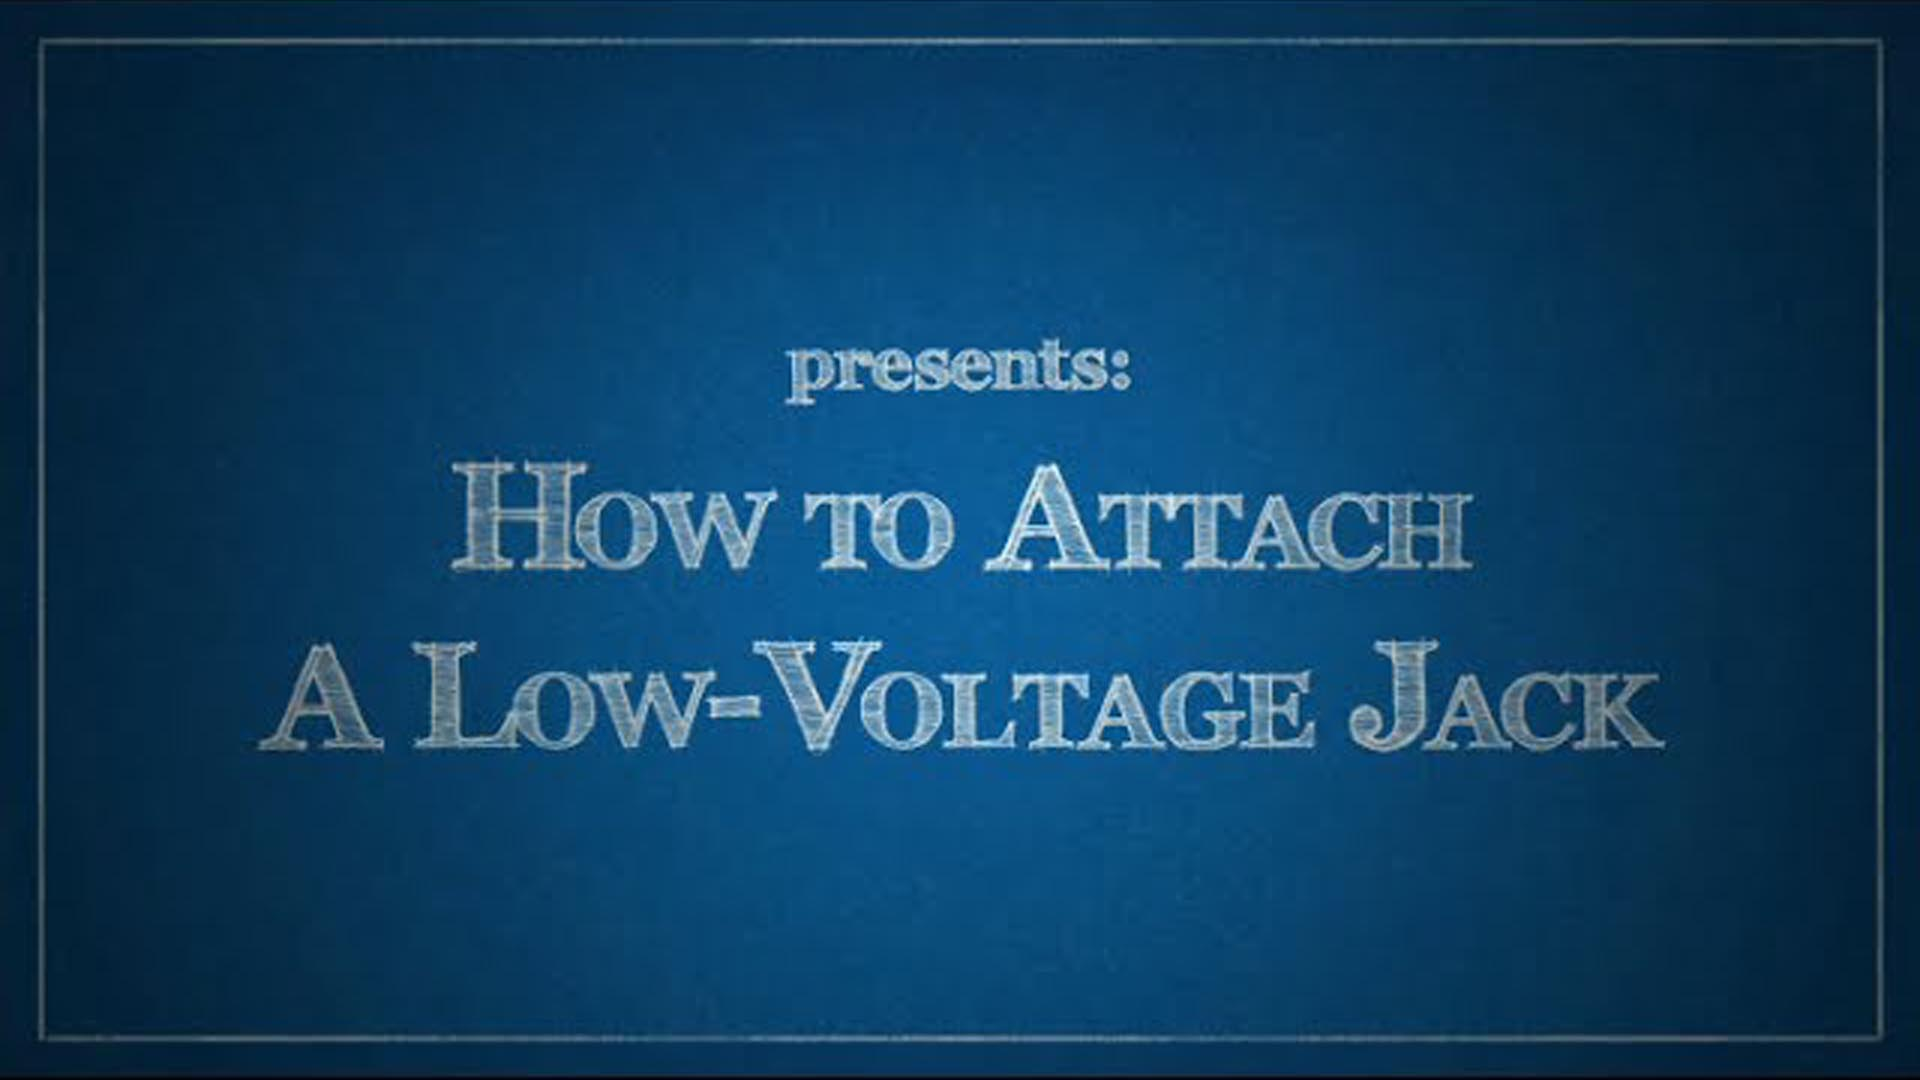 How to Attach a Low-Voltage Jack thumbnail of title screen